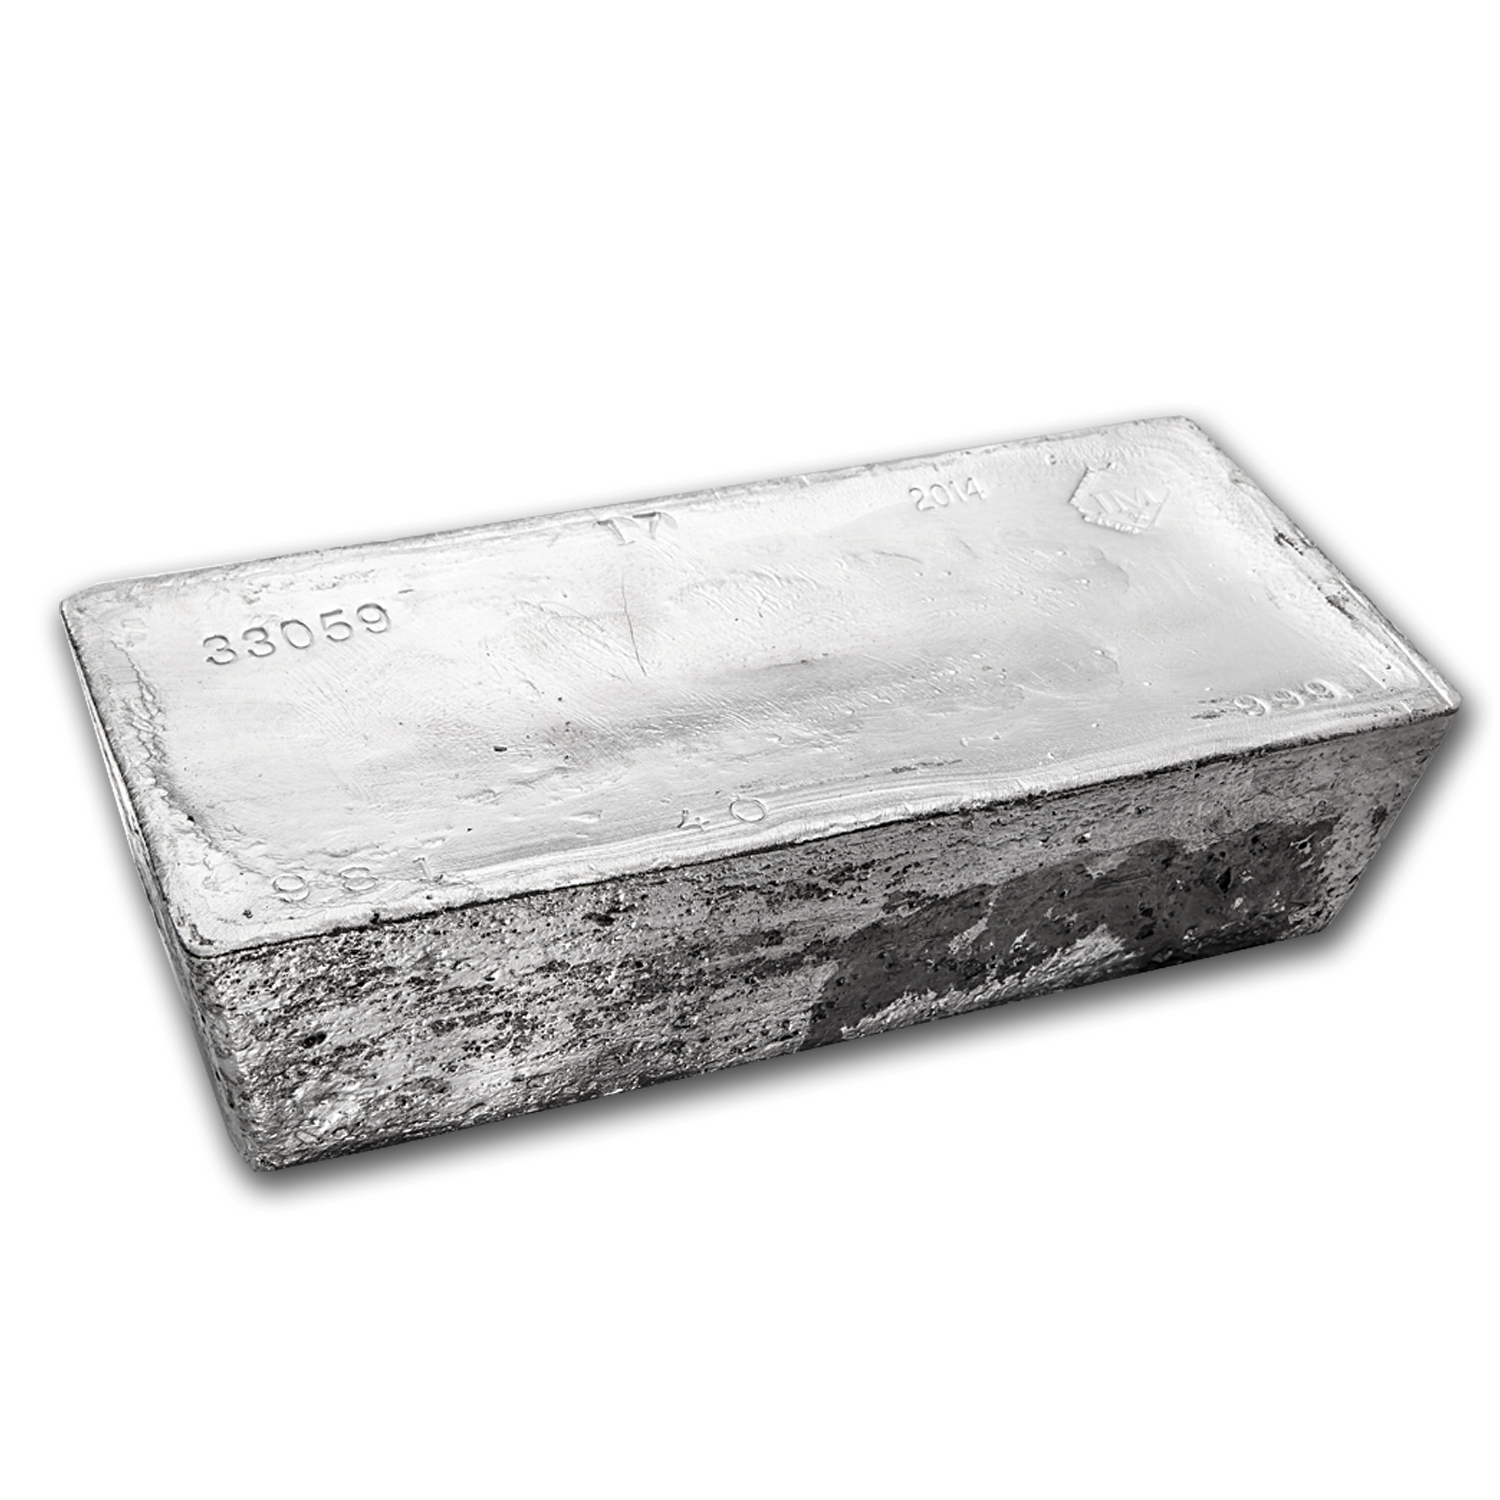 957.70 oz Silver Bars - Johnson Matthey